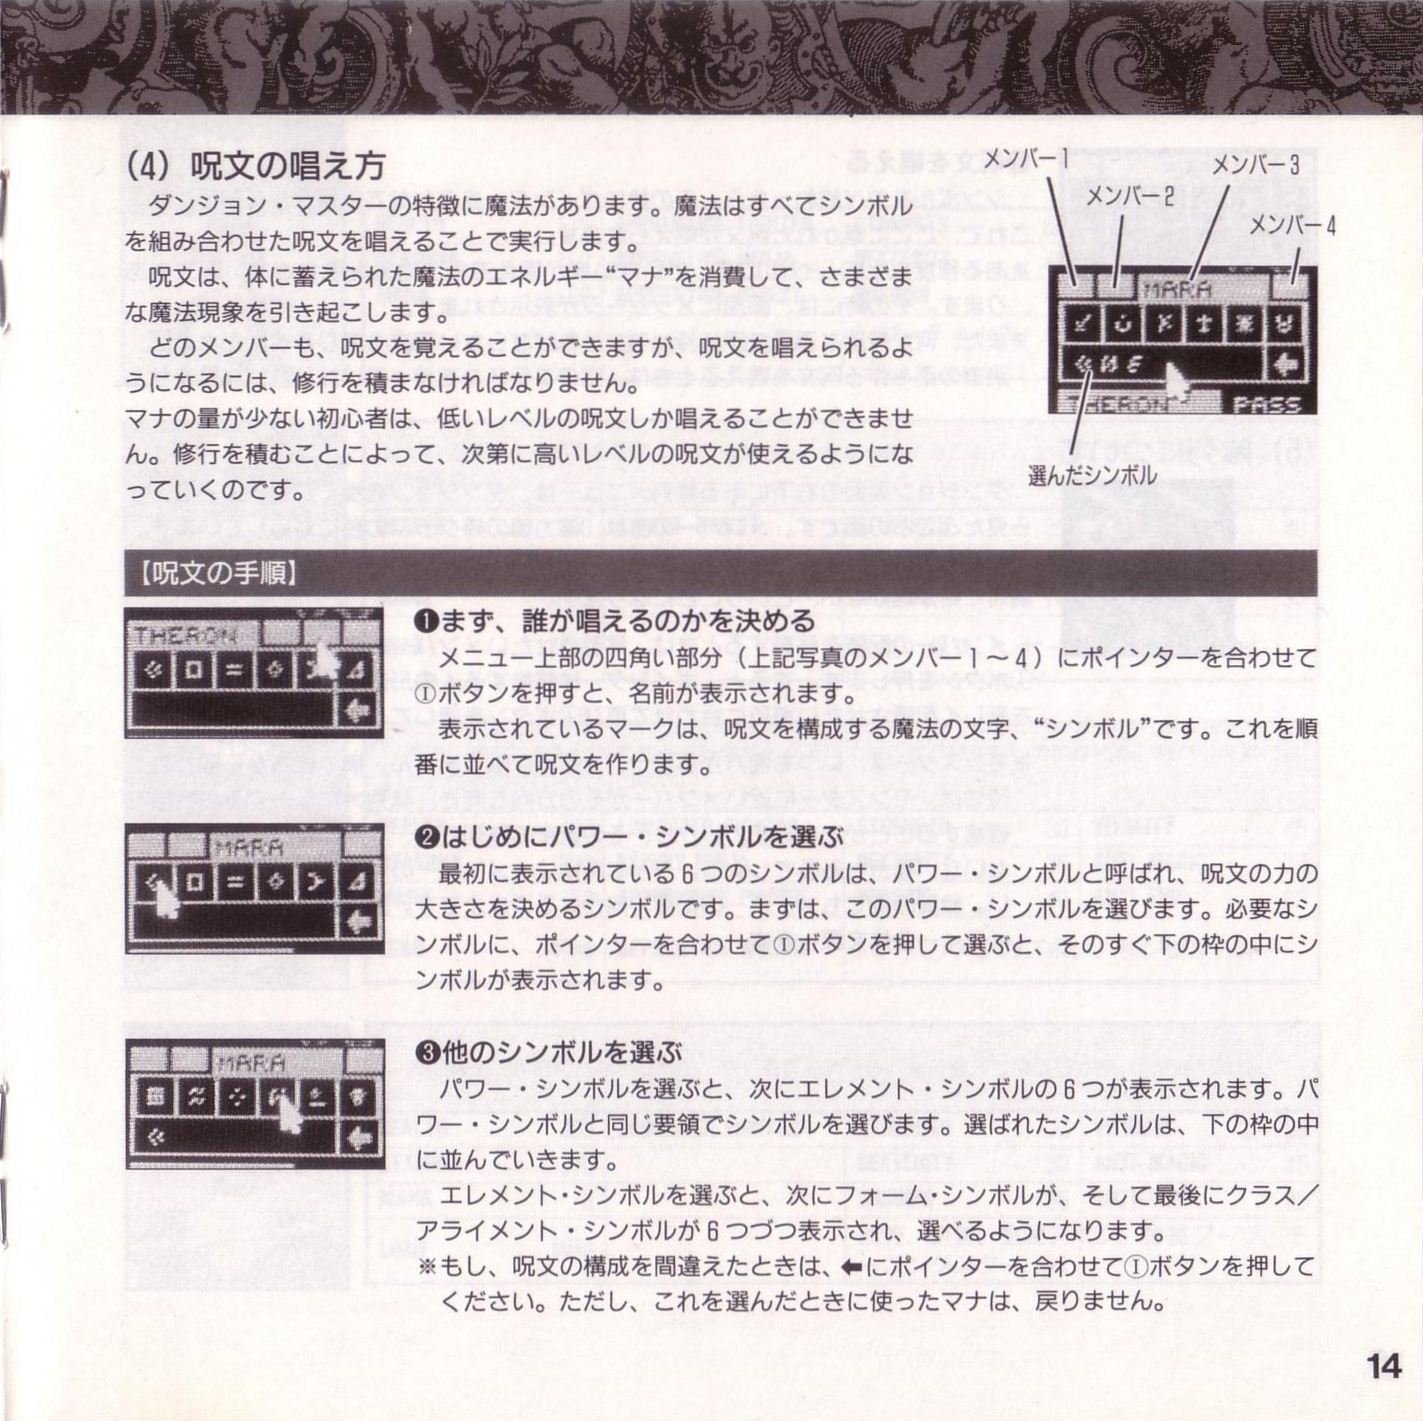 Game - Theron's Quest - JP - PC Engine - Booklet - Page 017 - Scan